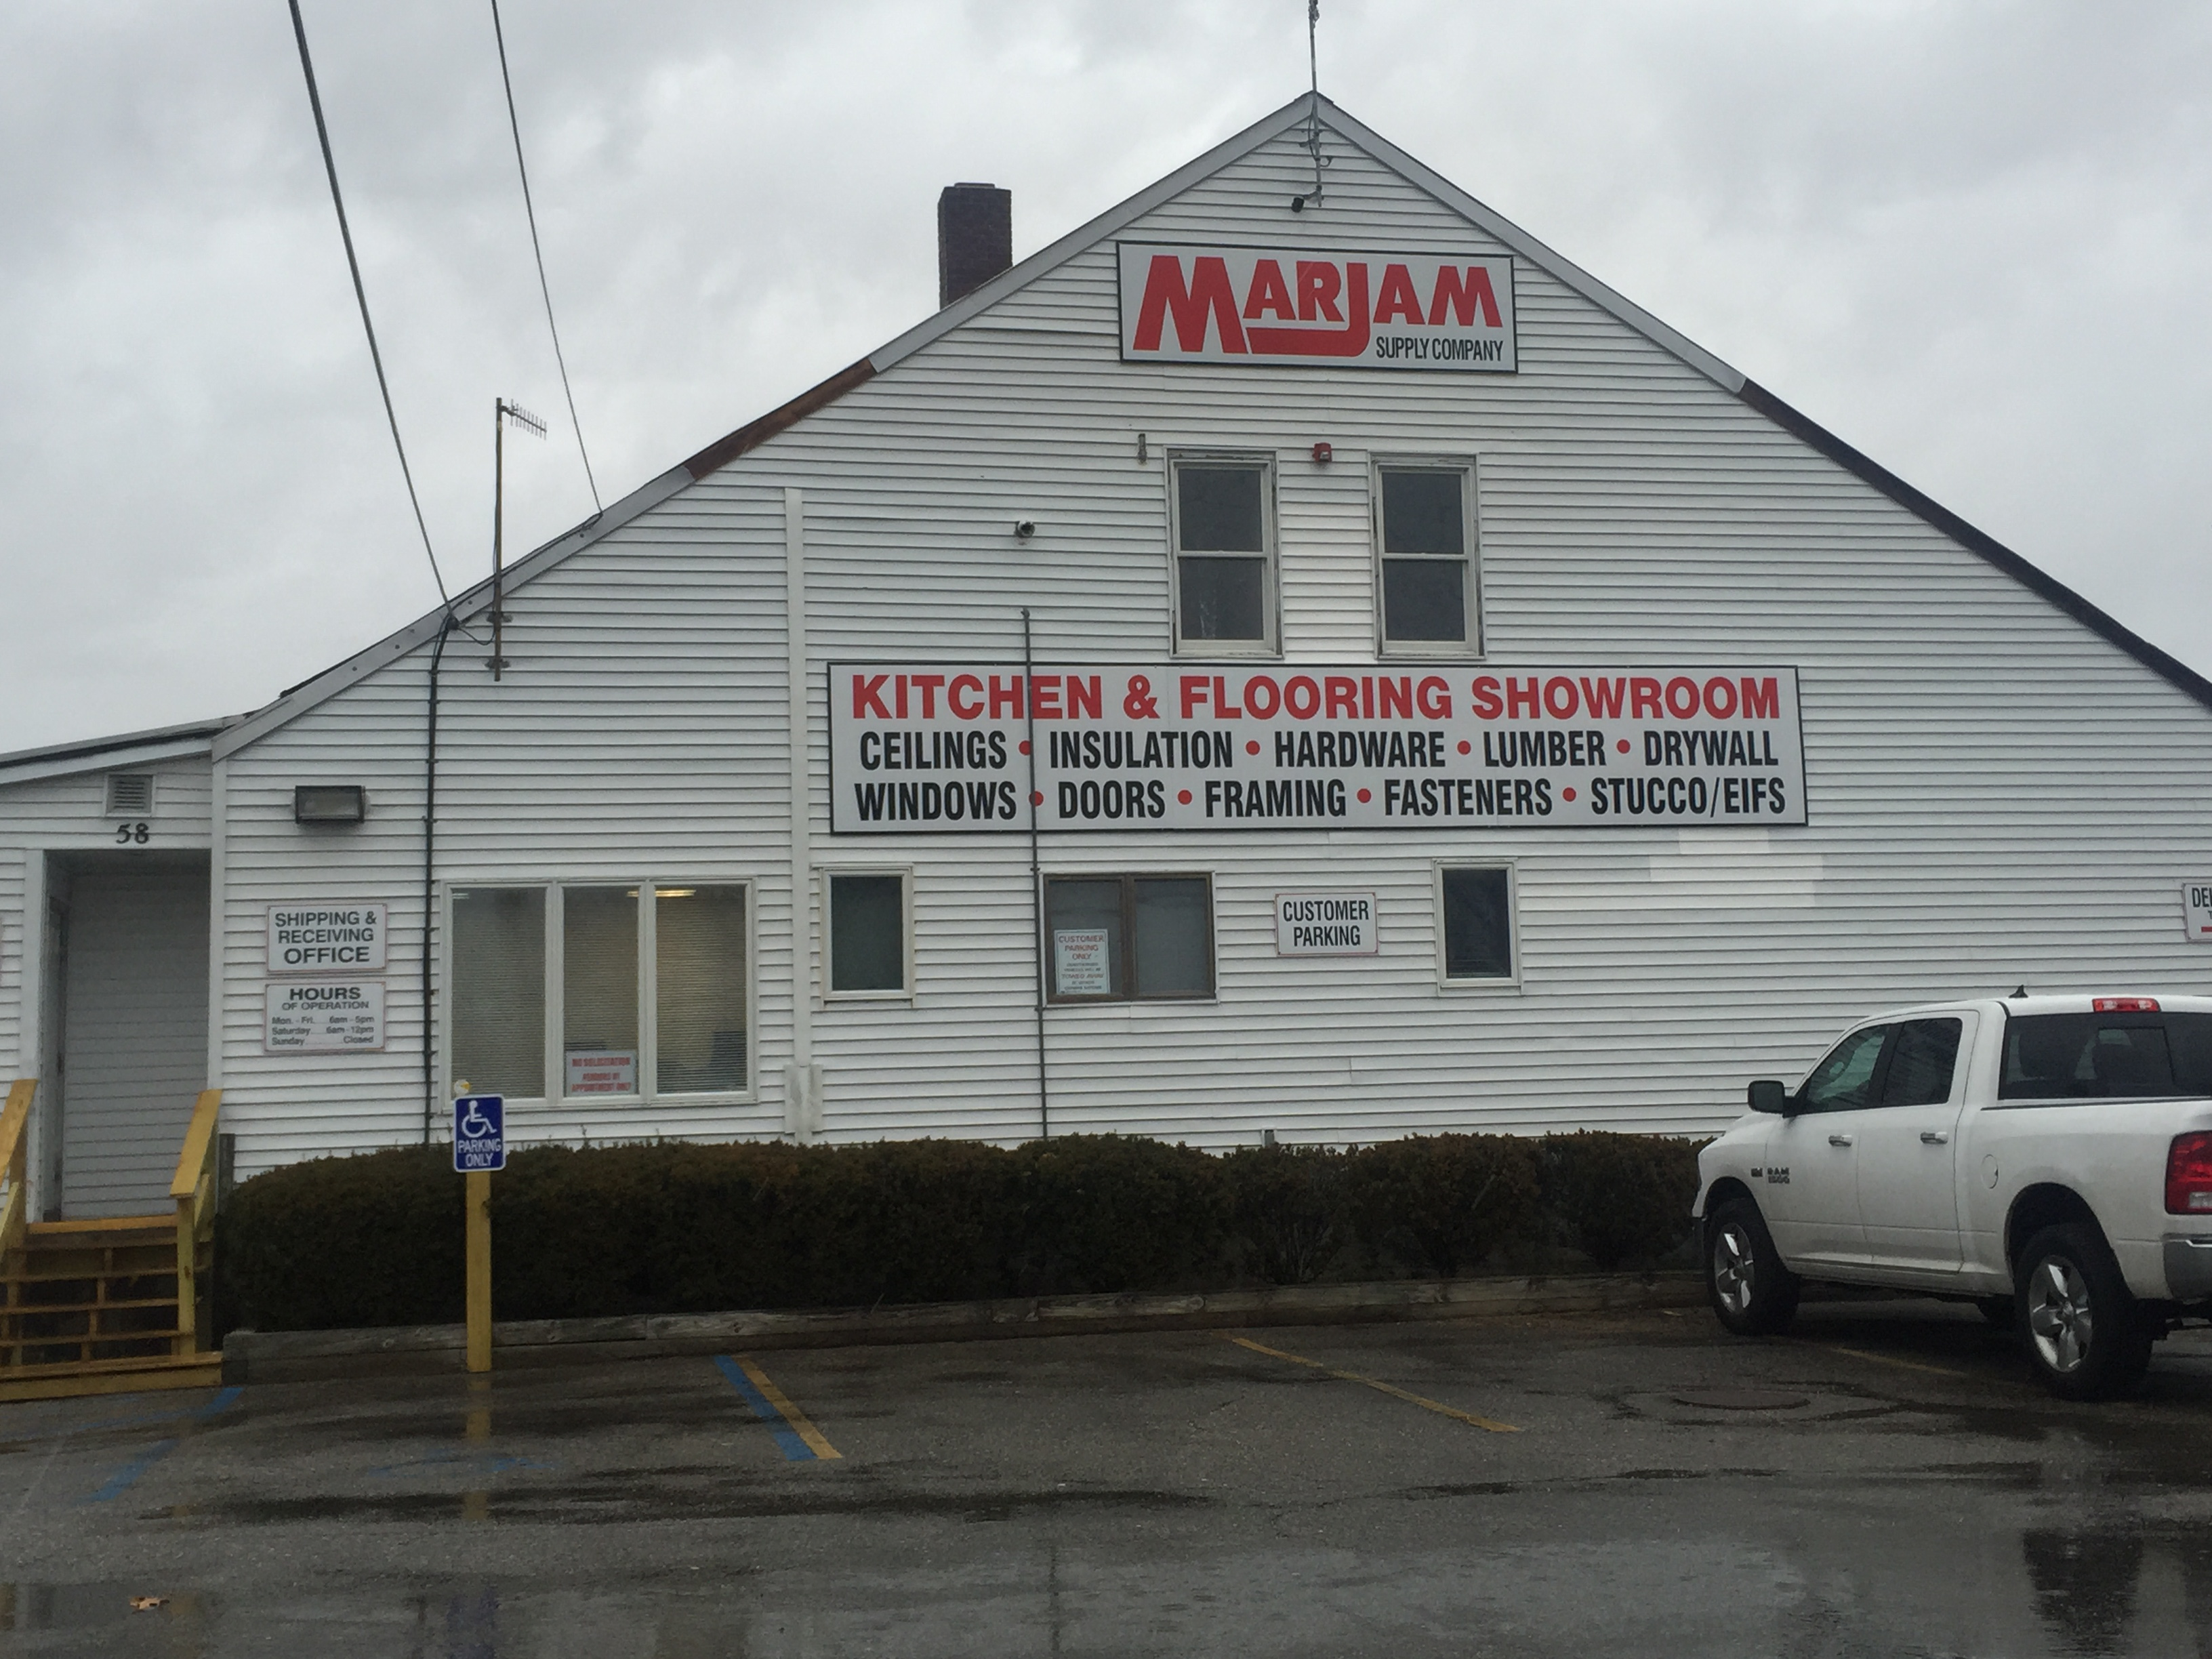 Marjam Supply opens for business in former Riverhead